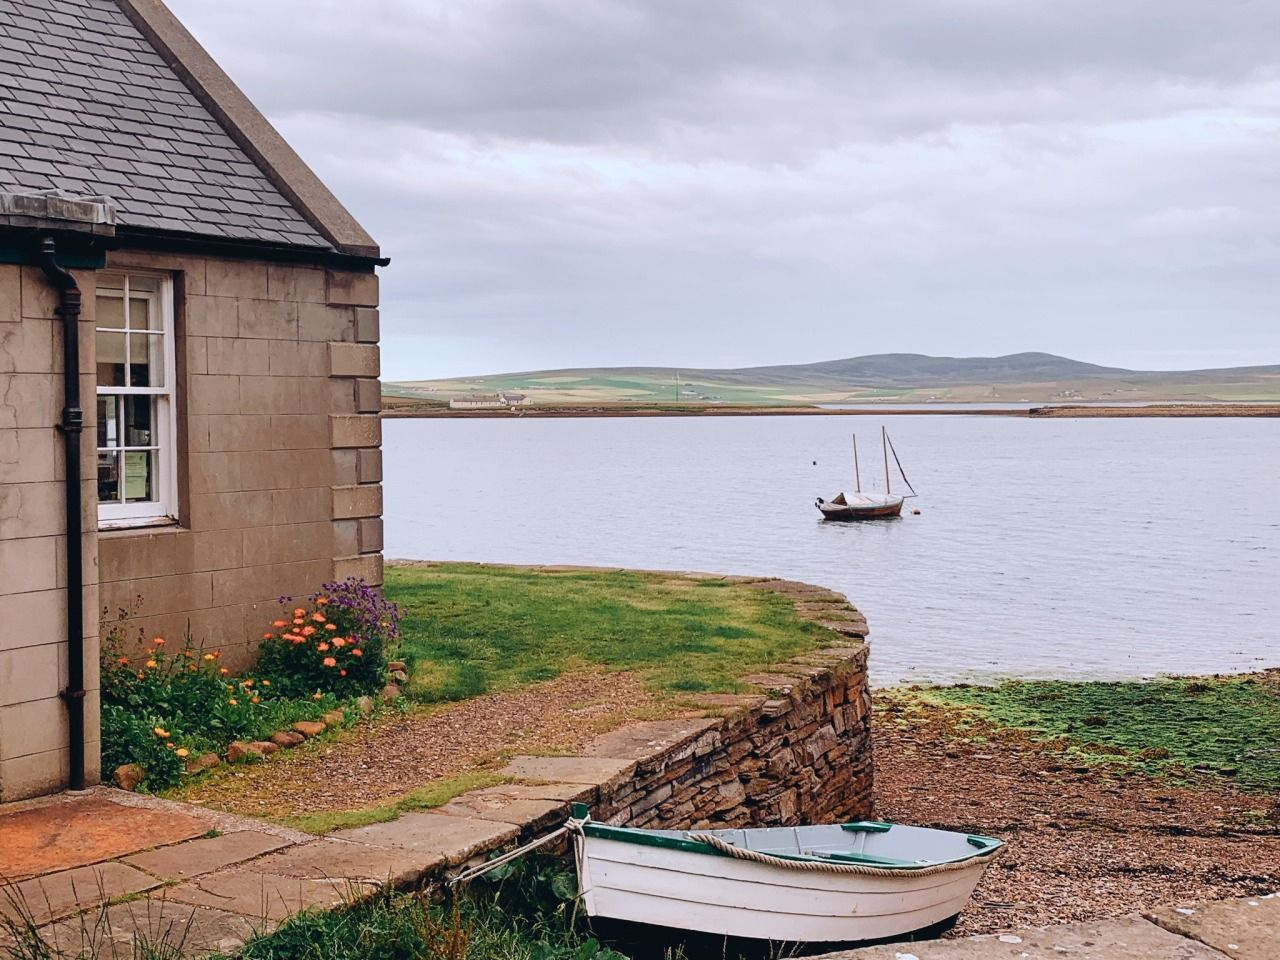 the whisper jusitifies the scream — Outskirts of Stromness, Orkney Islands, Scotland #orkneyislands the whisper jusitifies the scream — Outskirts of Stromness, Orkney Islands, Scotland